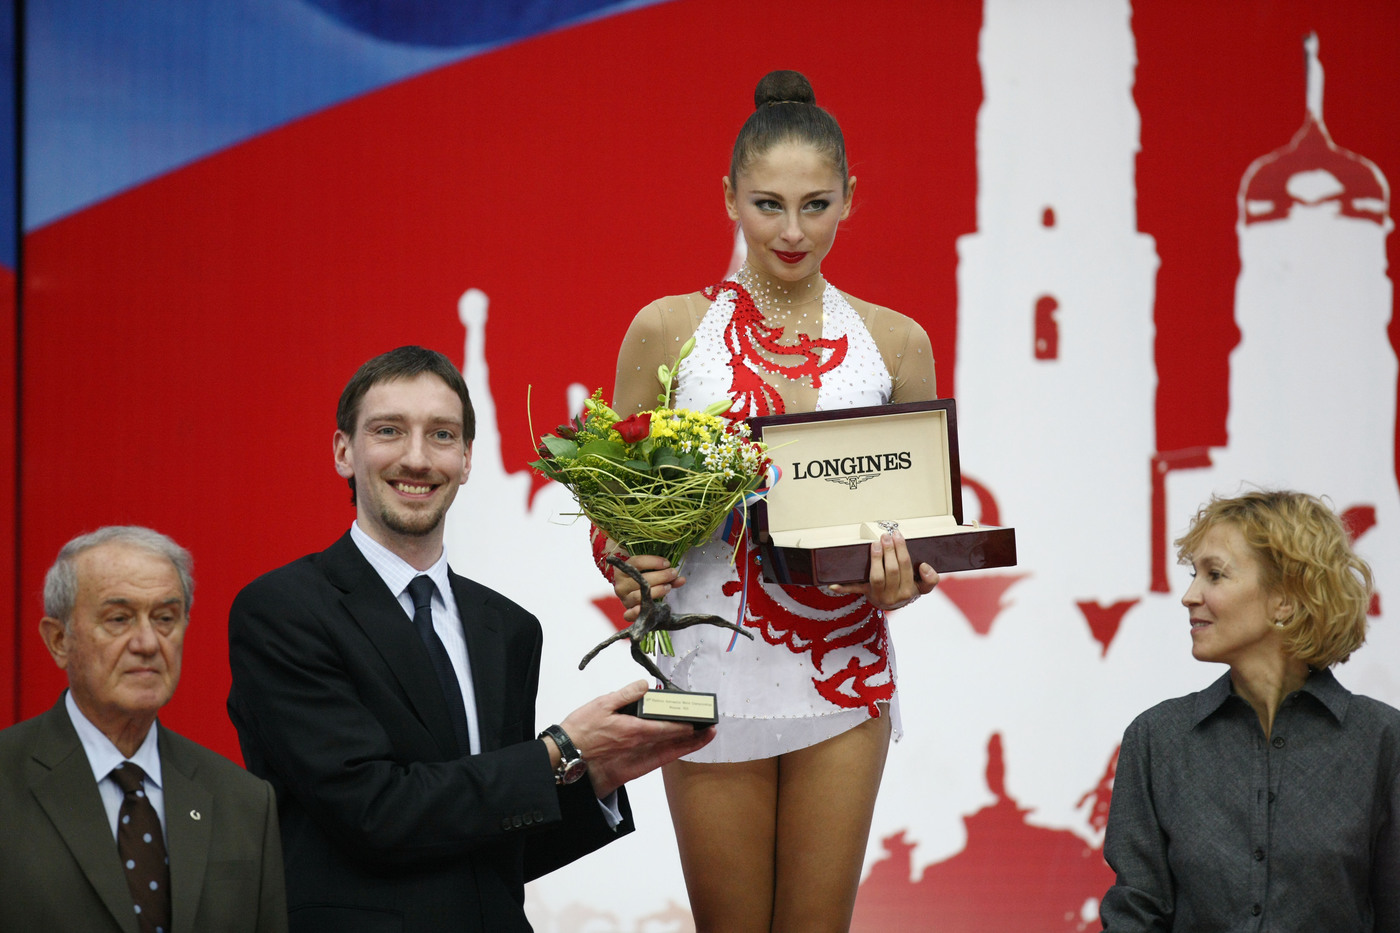 Longines Gymnastics Event: Ingeborga Dapkunaite gives the Longines Prize for Elegance to Daria Kondakova 5